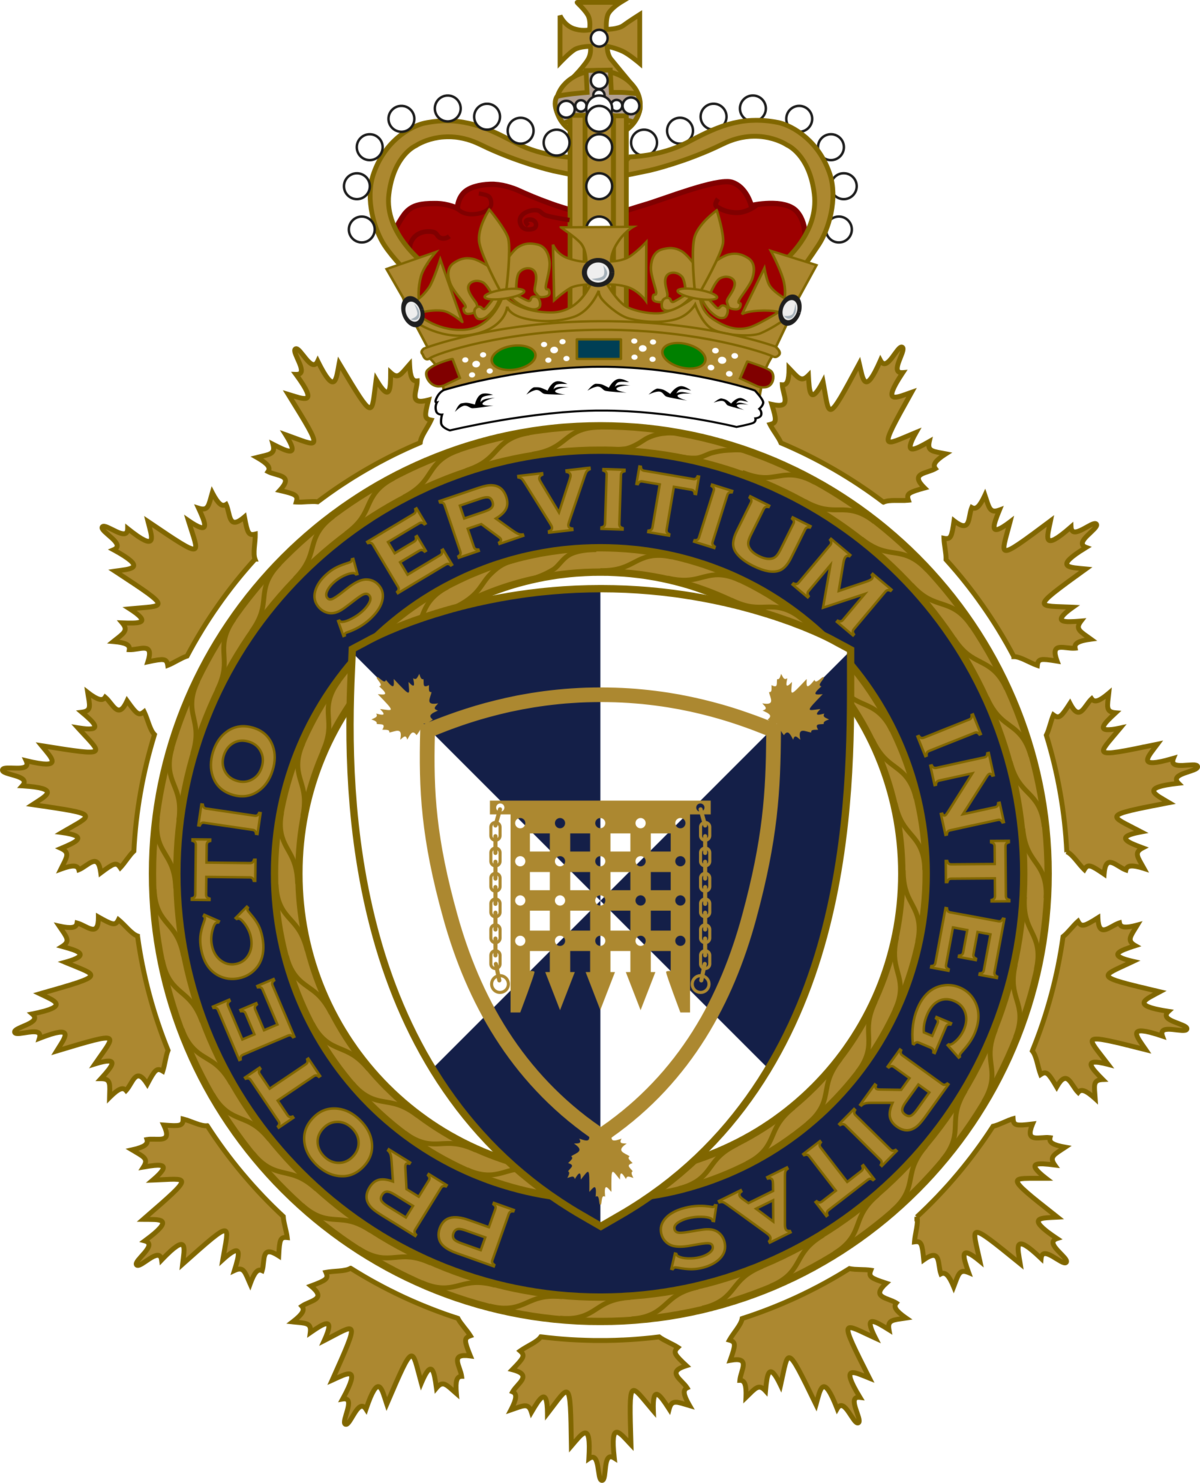 Crest border png. Canada services agency wikipedia